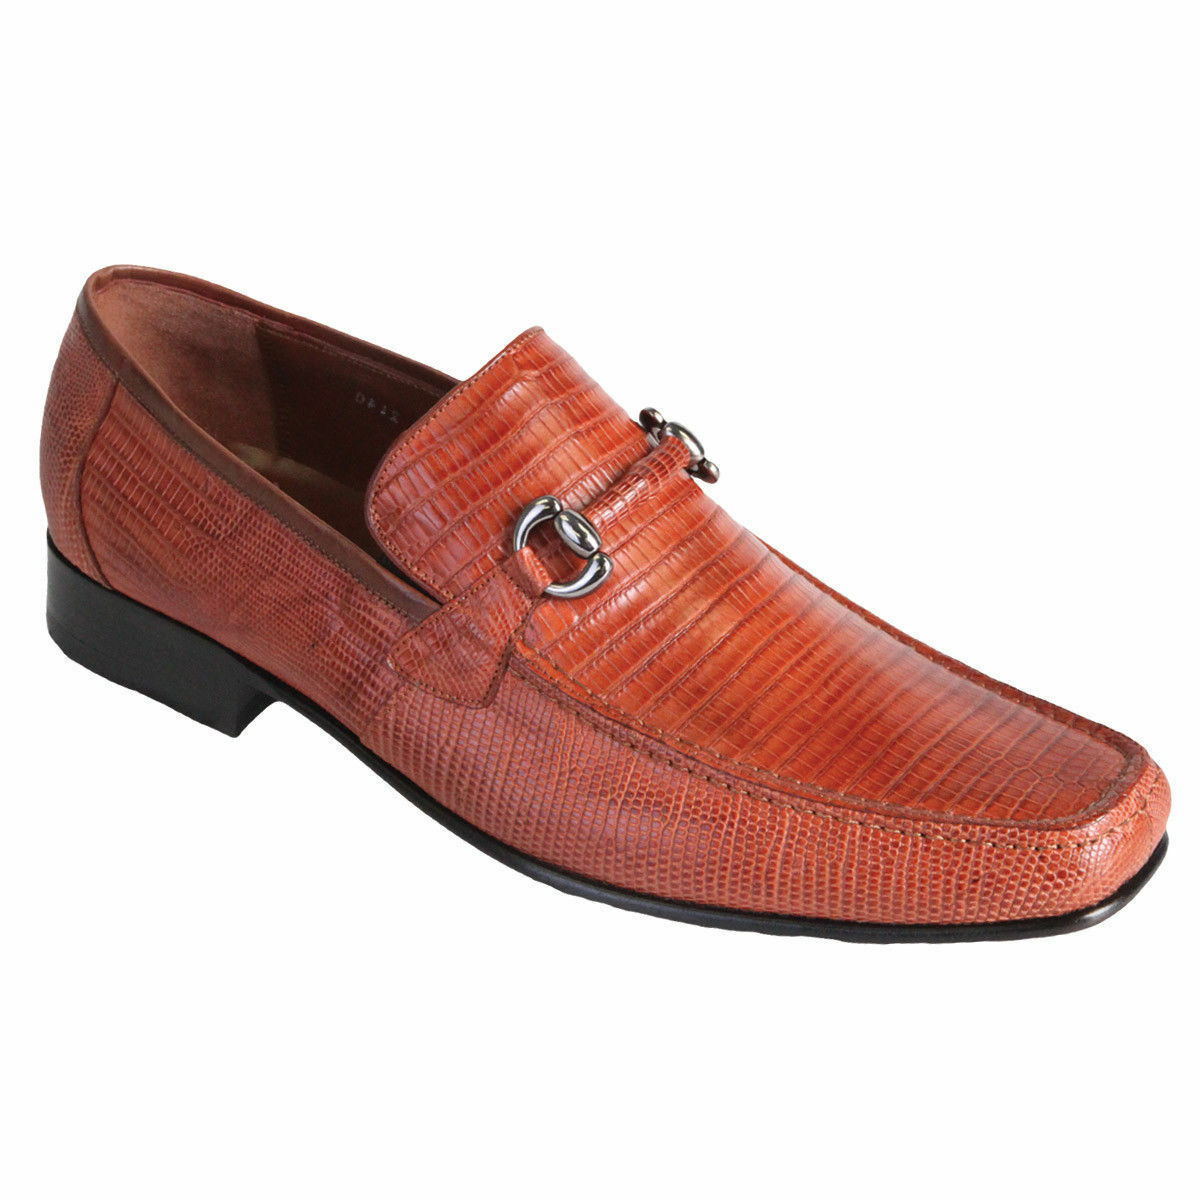 Los Altos Altos Altos Men's Cognac Genuine Teju Lizard Dress scarpe Casual Slip On Loafer D 8c63d5